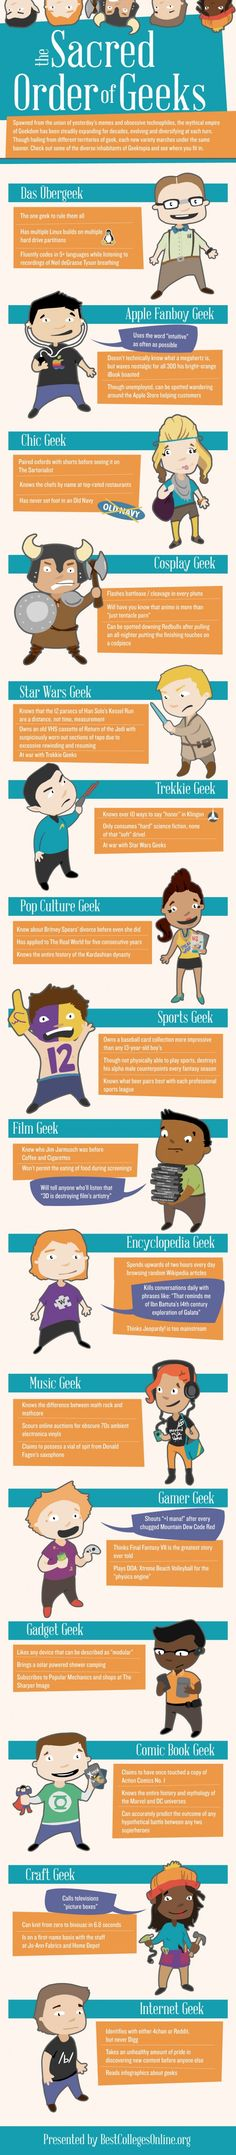 What Kind of Geek are You? [INFOGRAPHIC] #Geek #Hierarchy #Geekdom - yes there is a pecking order :)